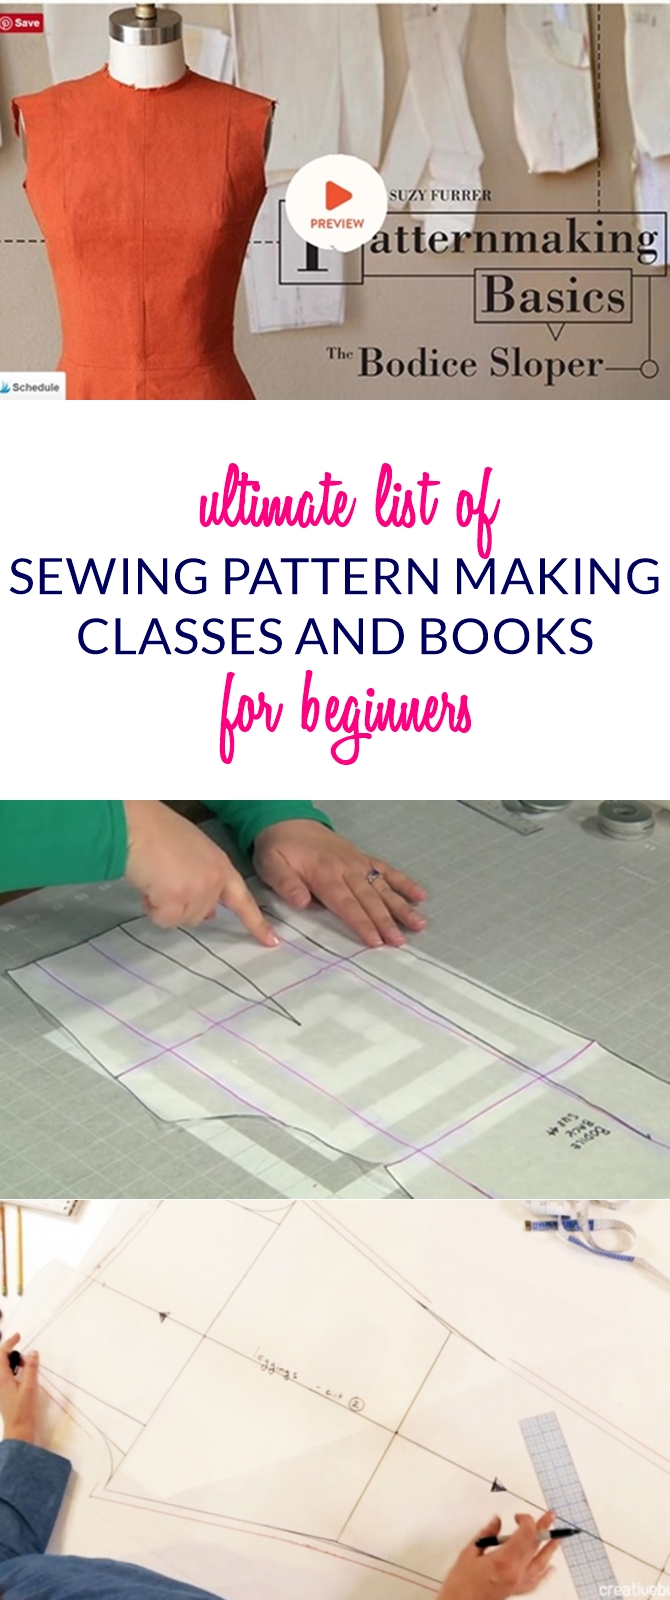 ultimate list of sewing pattern making resources for beginners